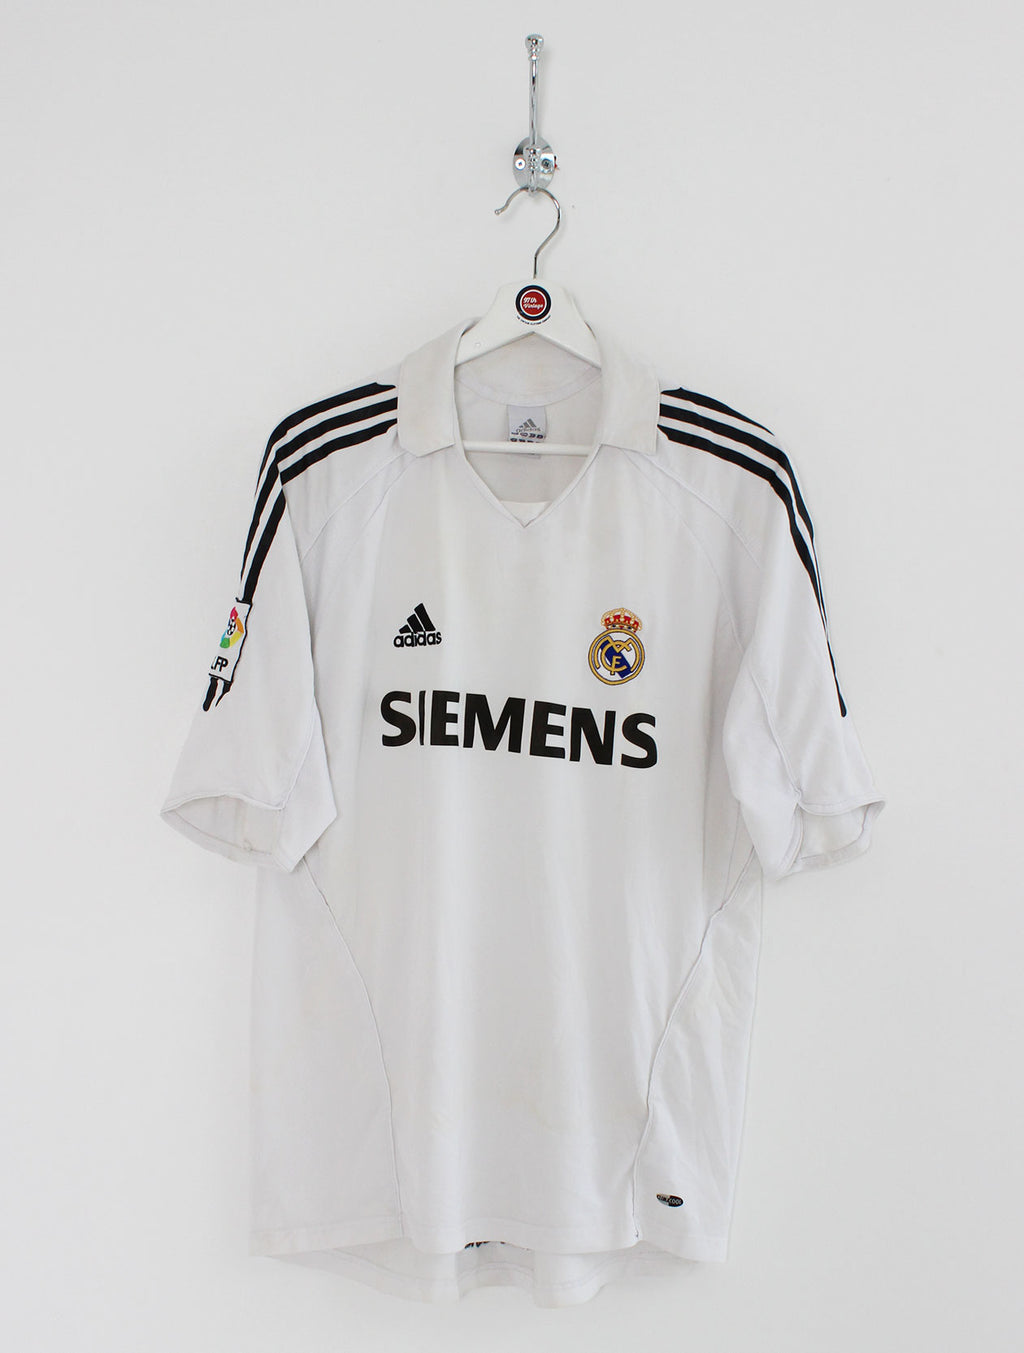 2005/06 Real Madrid Football Shirt